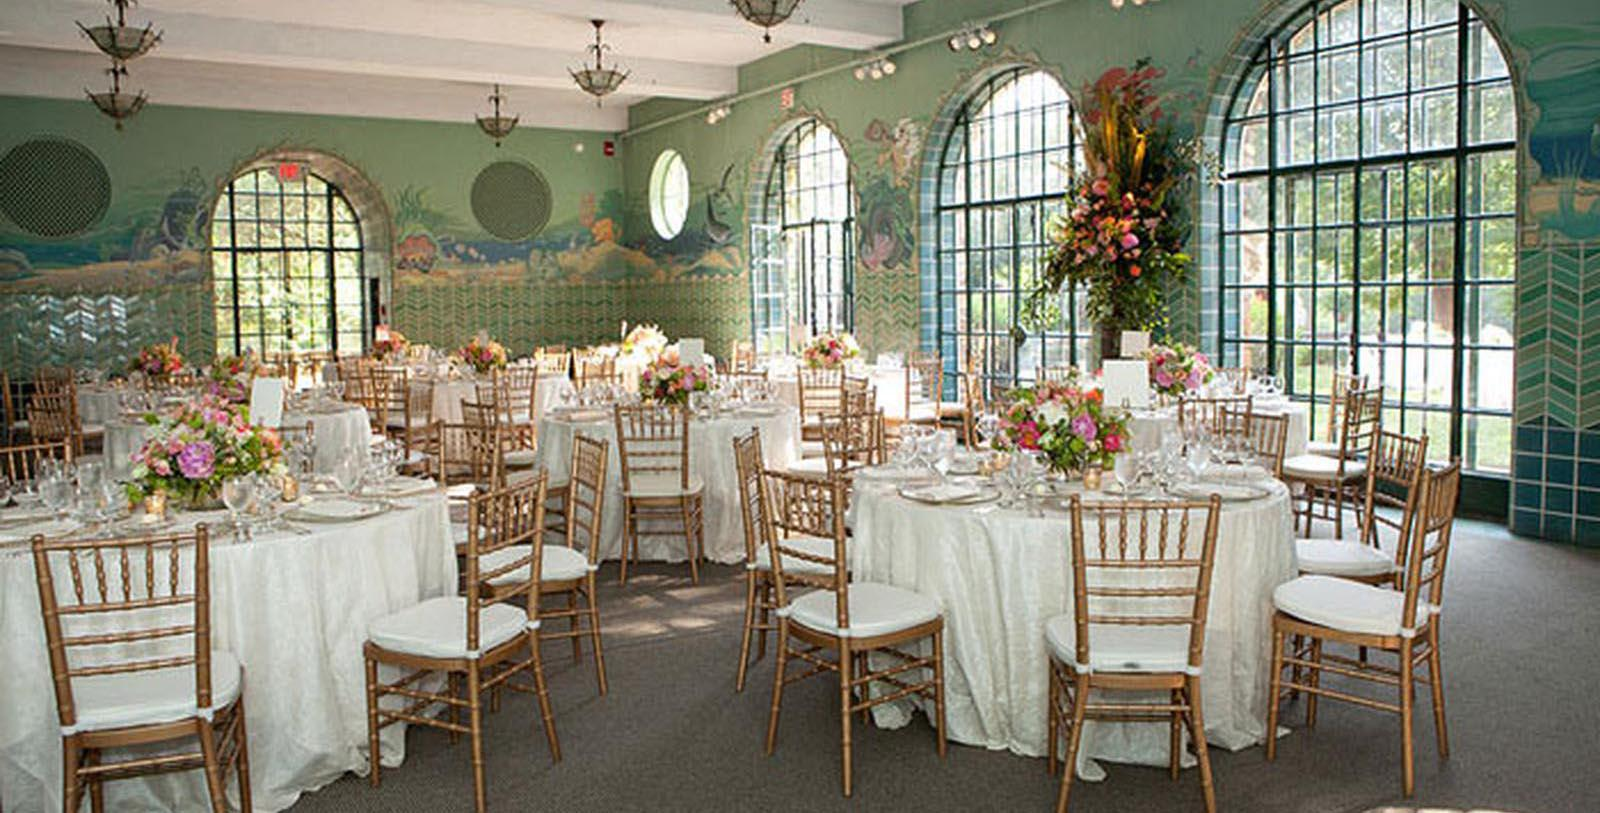 Image of Event Space The Graylyn Estate,1932, Member of Historic Hotels of America, in Winston-Salem, North Carolina, Experience